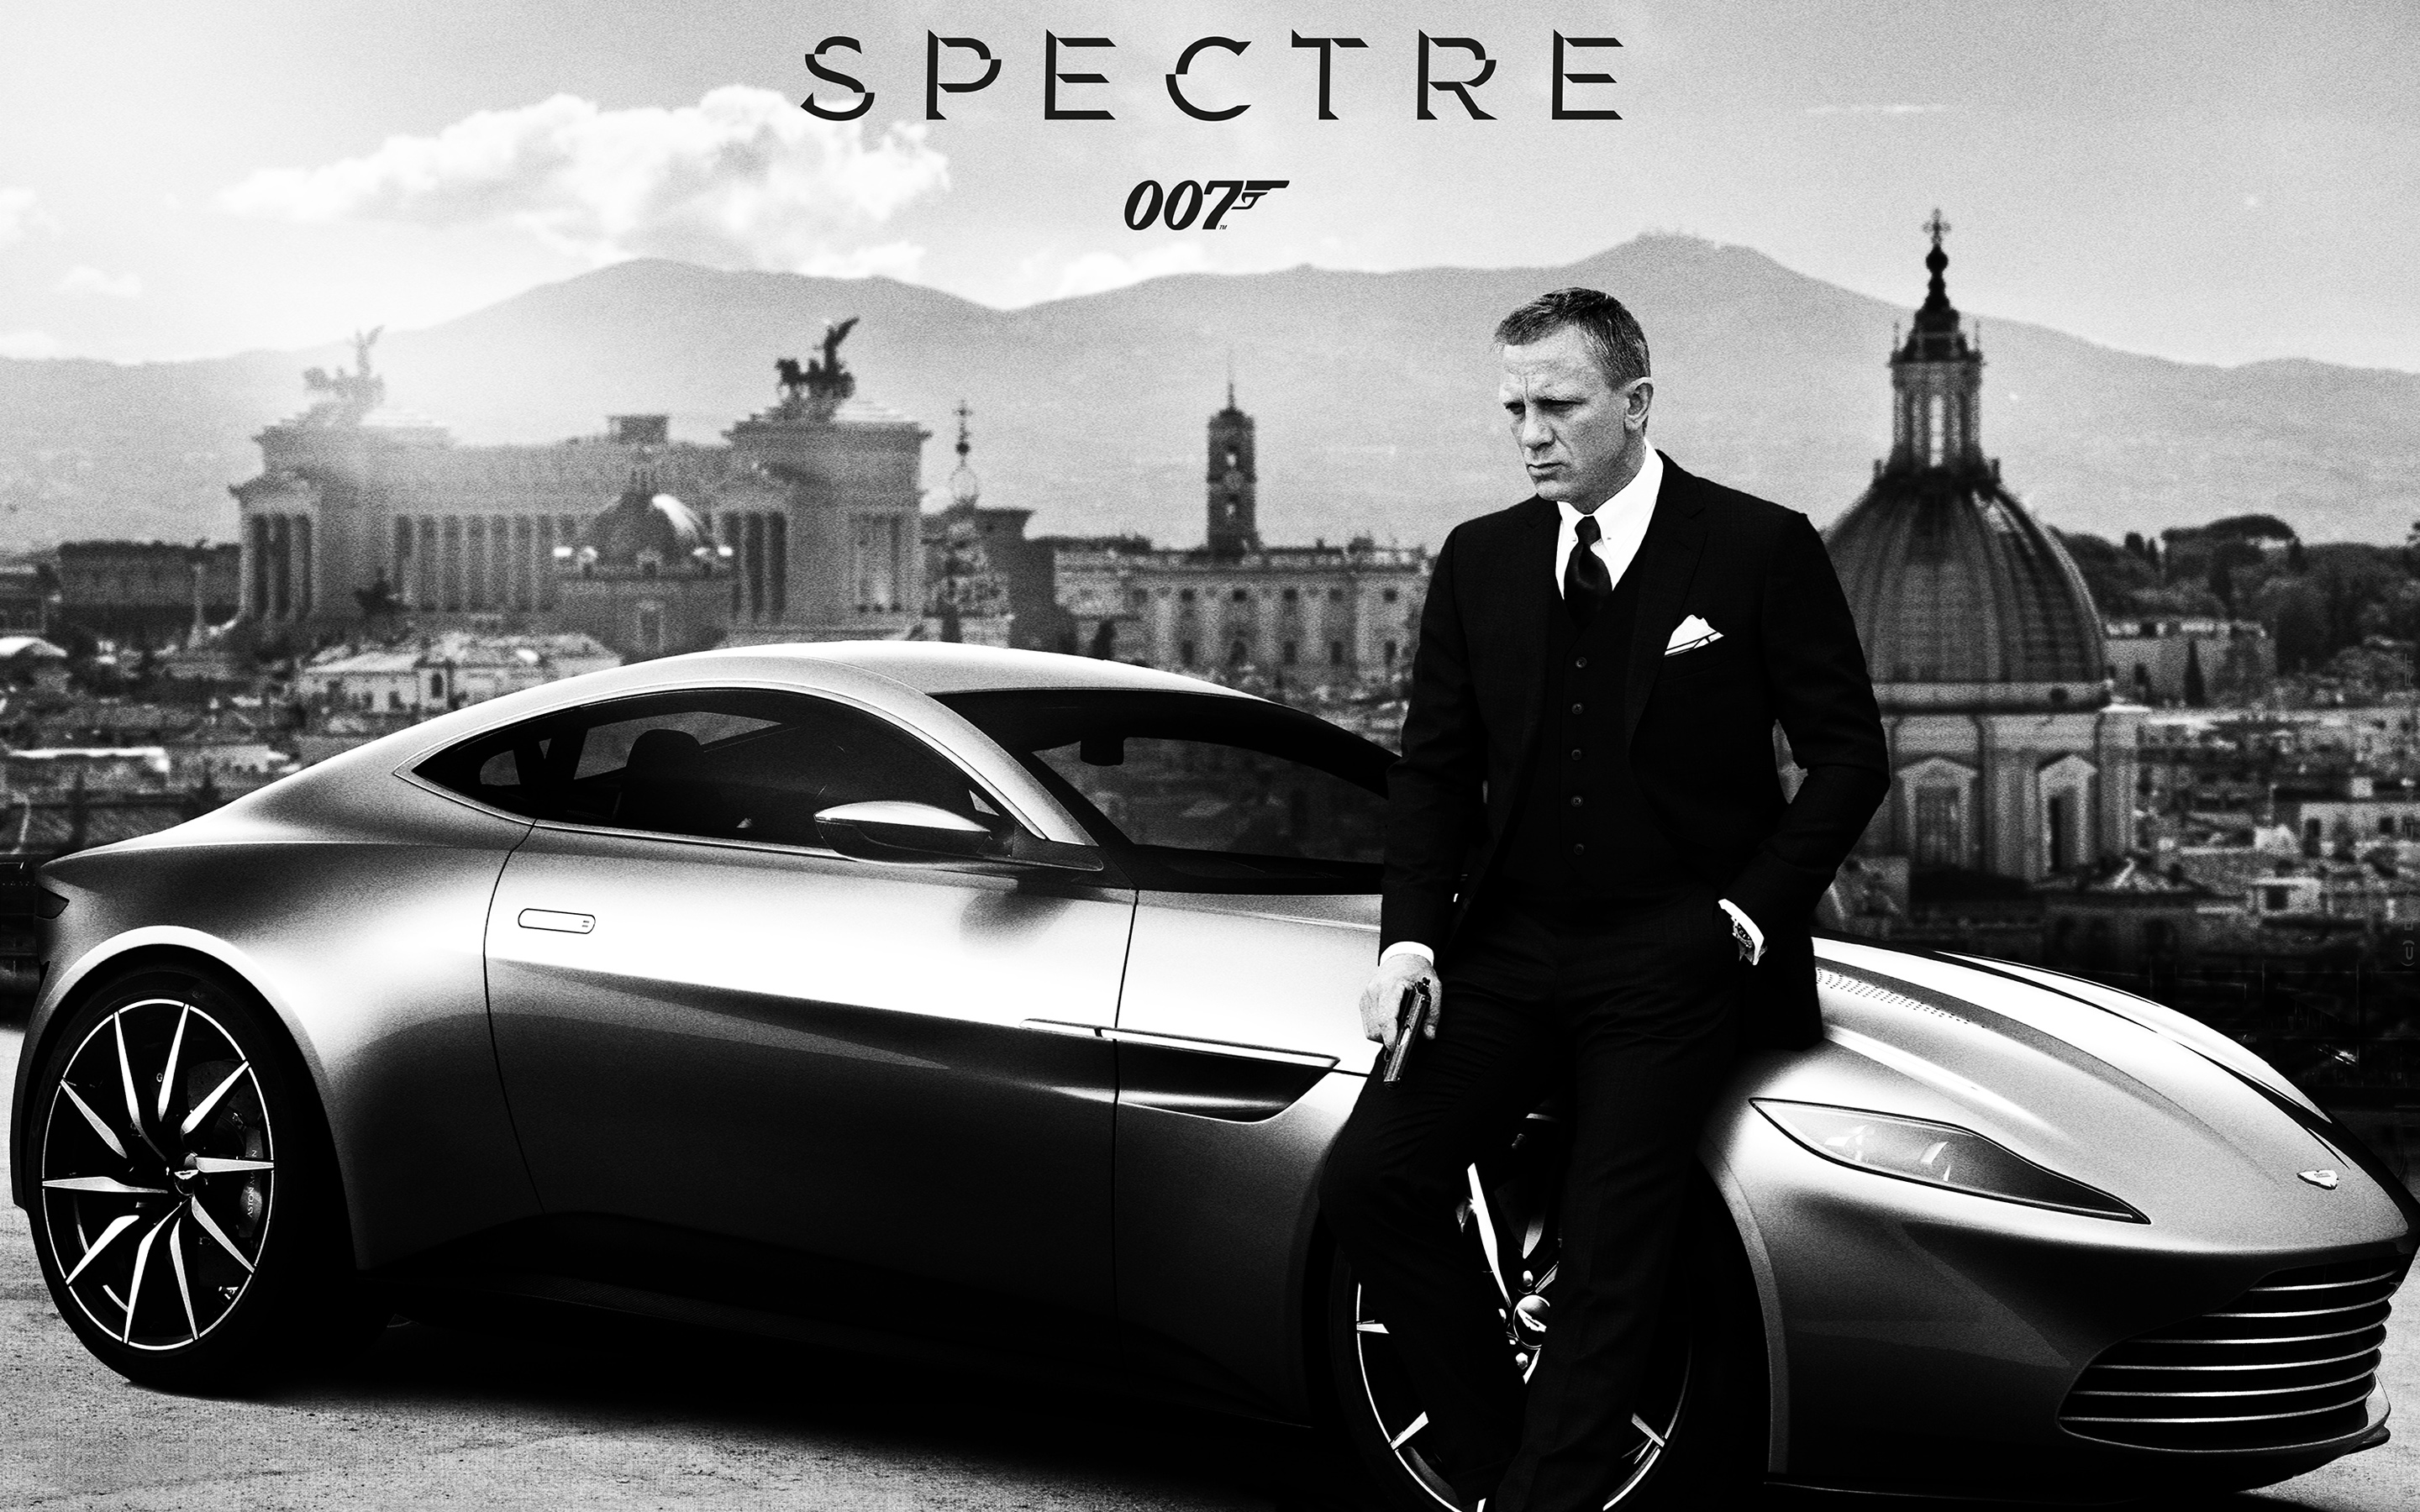 84 spectre hd wallpapers | background images - wallpaper abyss